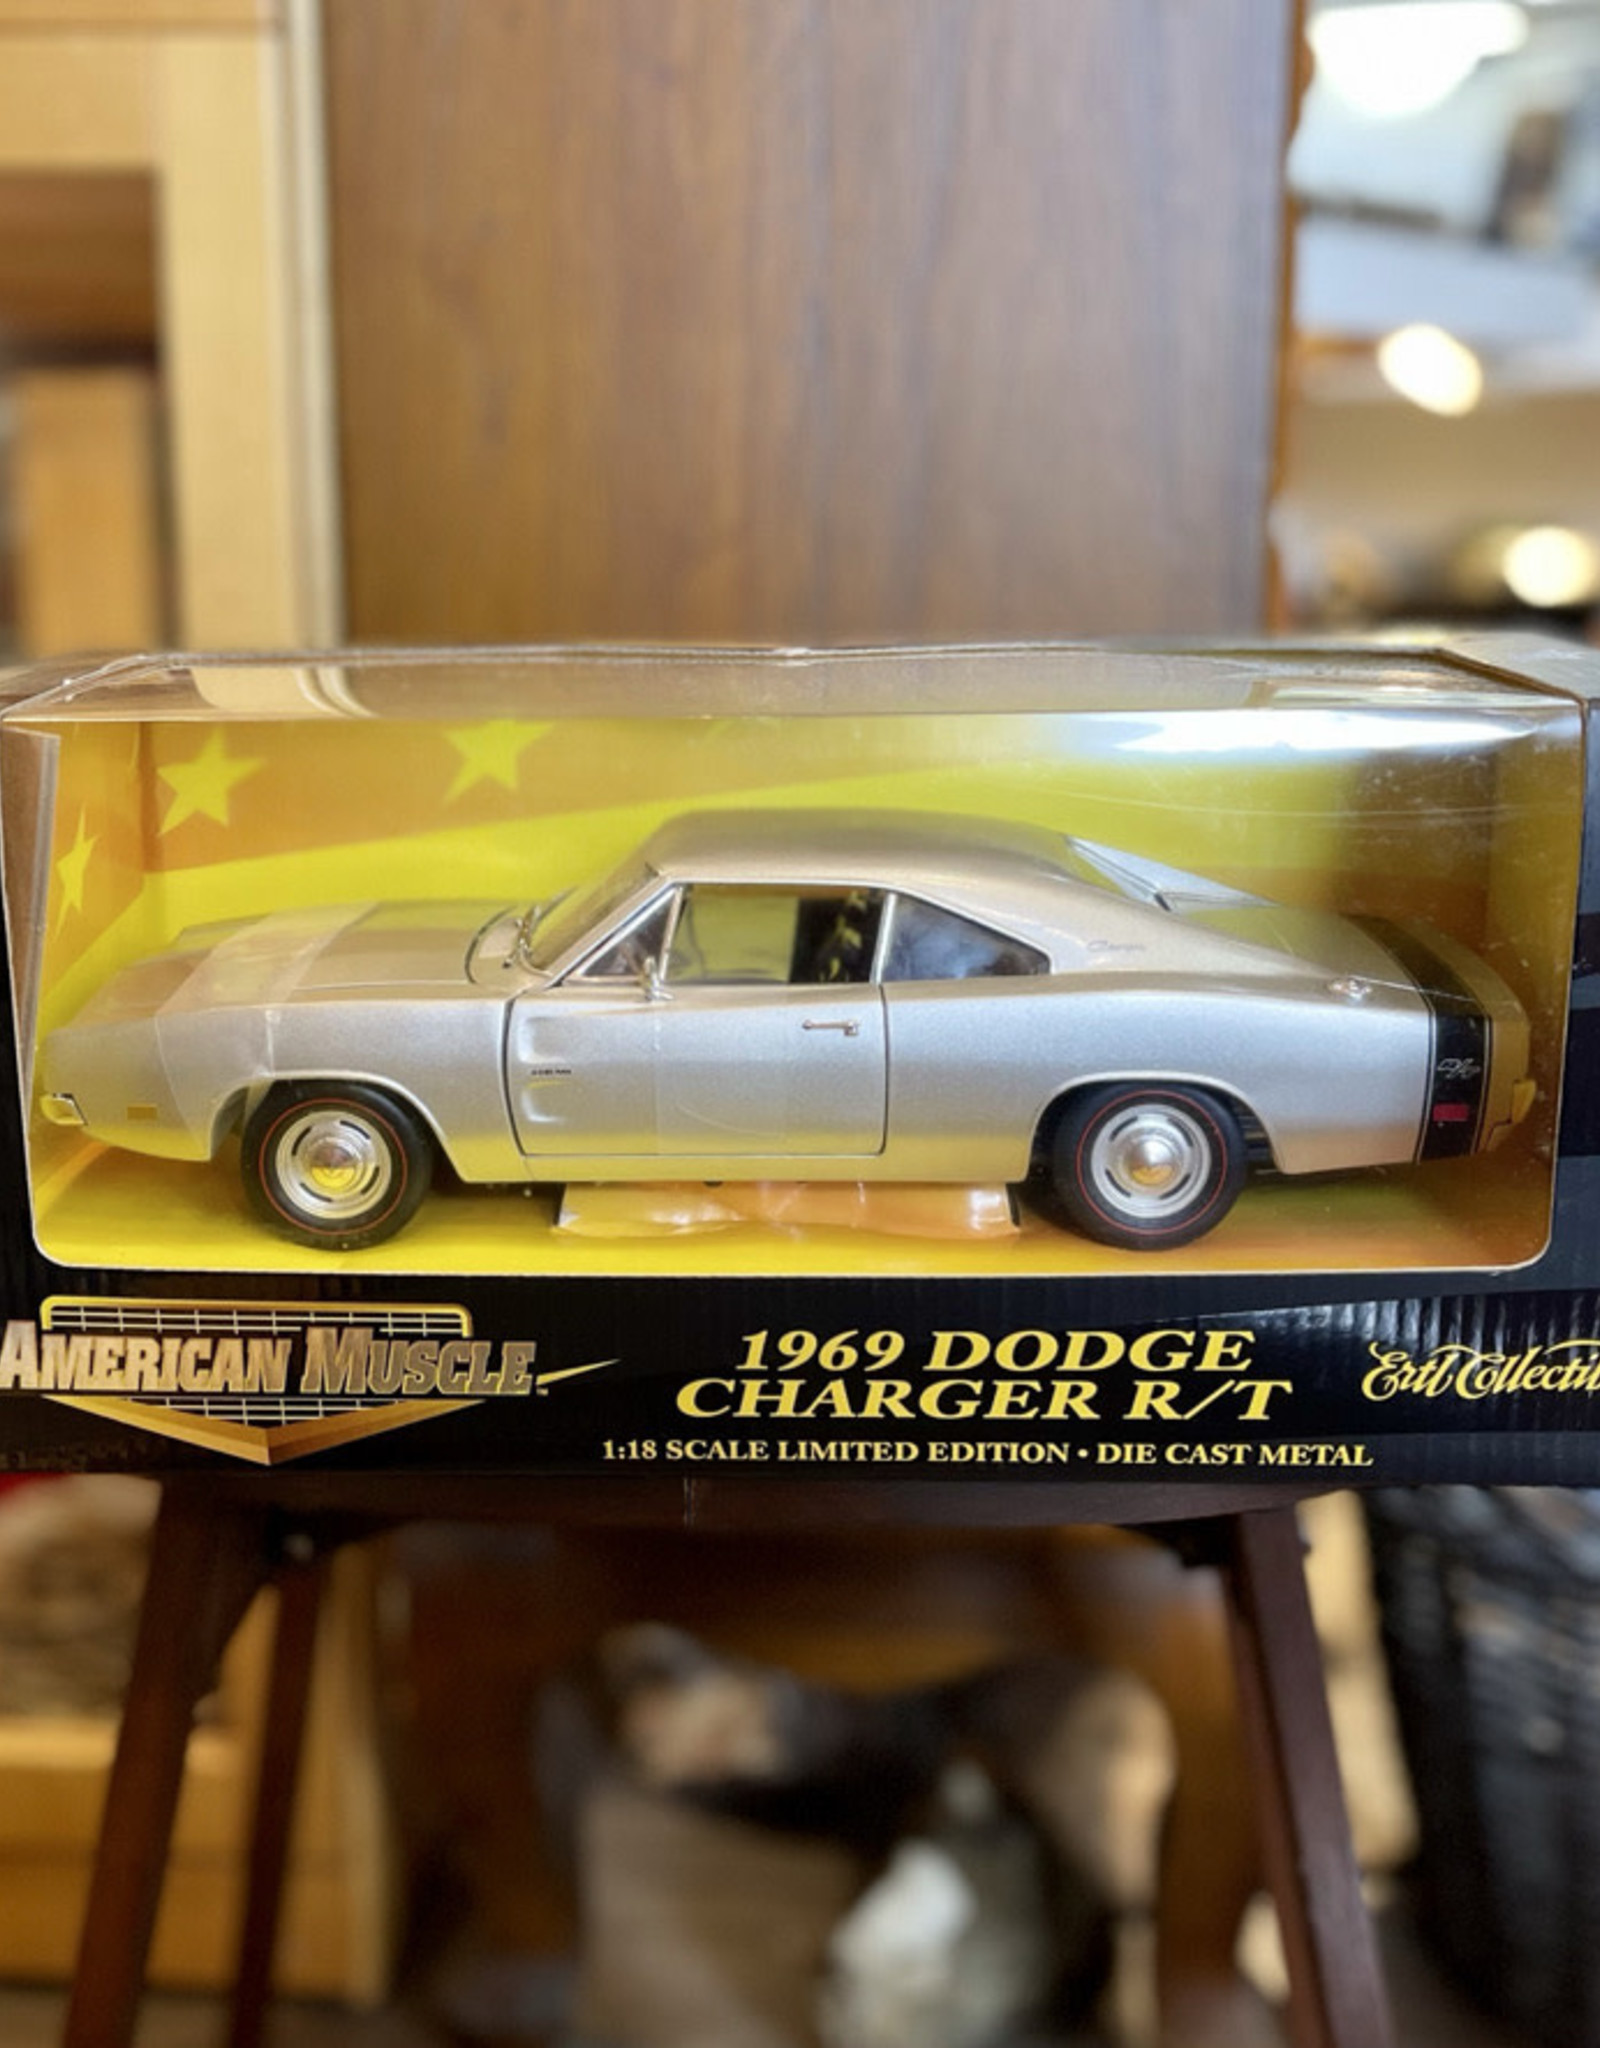 DieCast Car 1969 Dodge Charger R/T